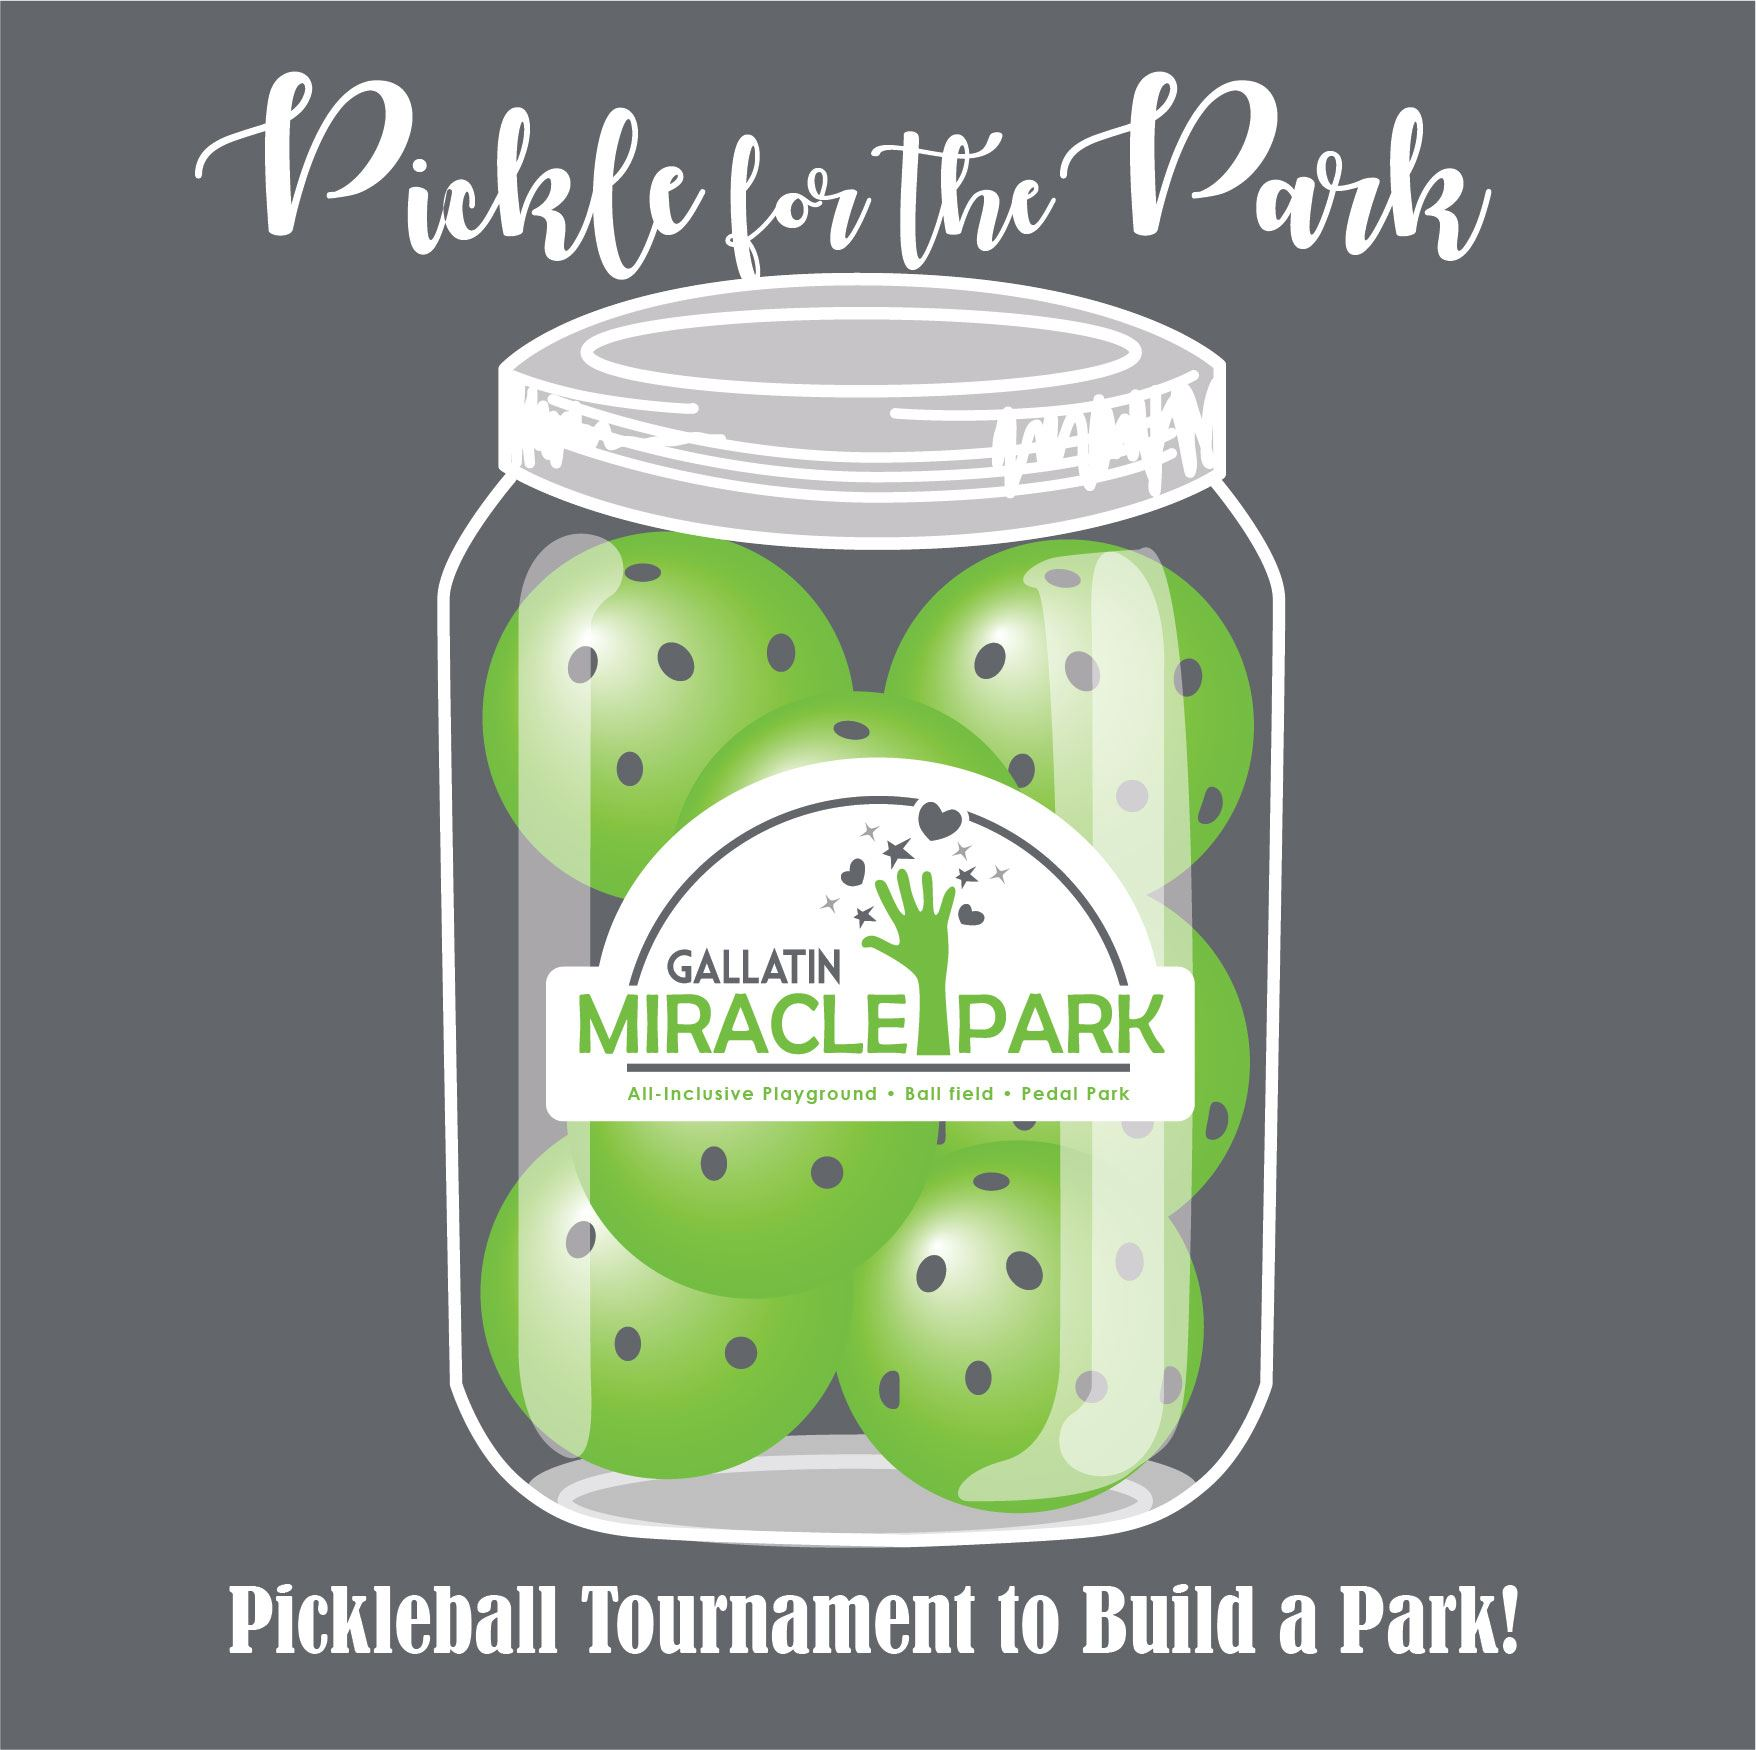 pickleball for the park logo